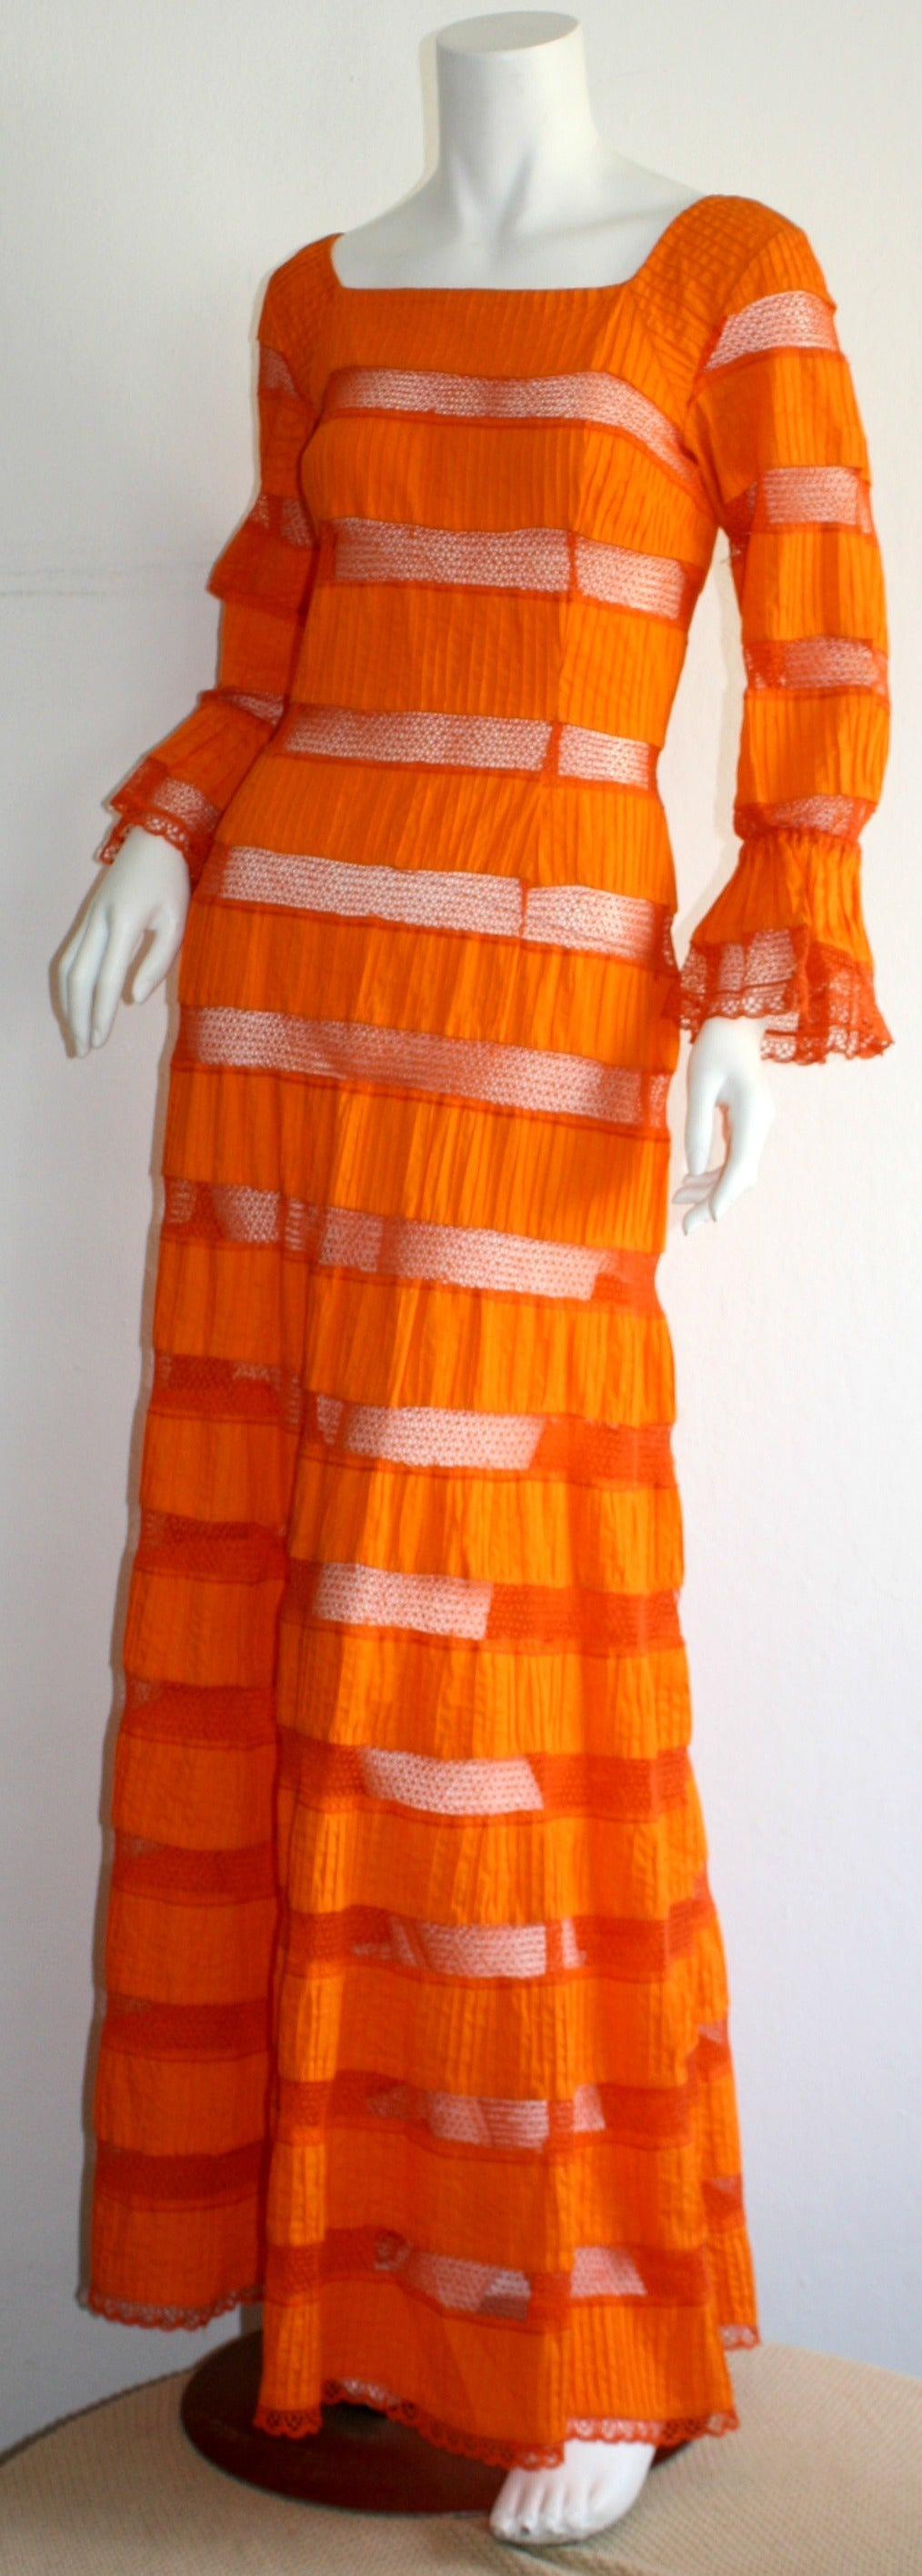 Tachi Castillo Vintage 1970s Orange Cotton Crochet Mexican Maxi Dress 5